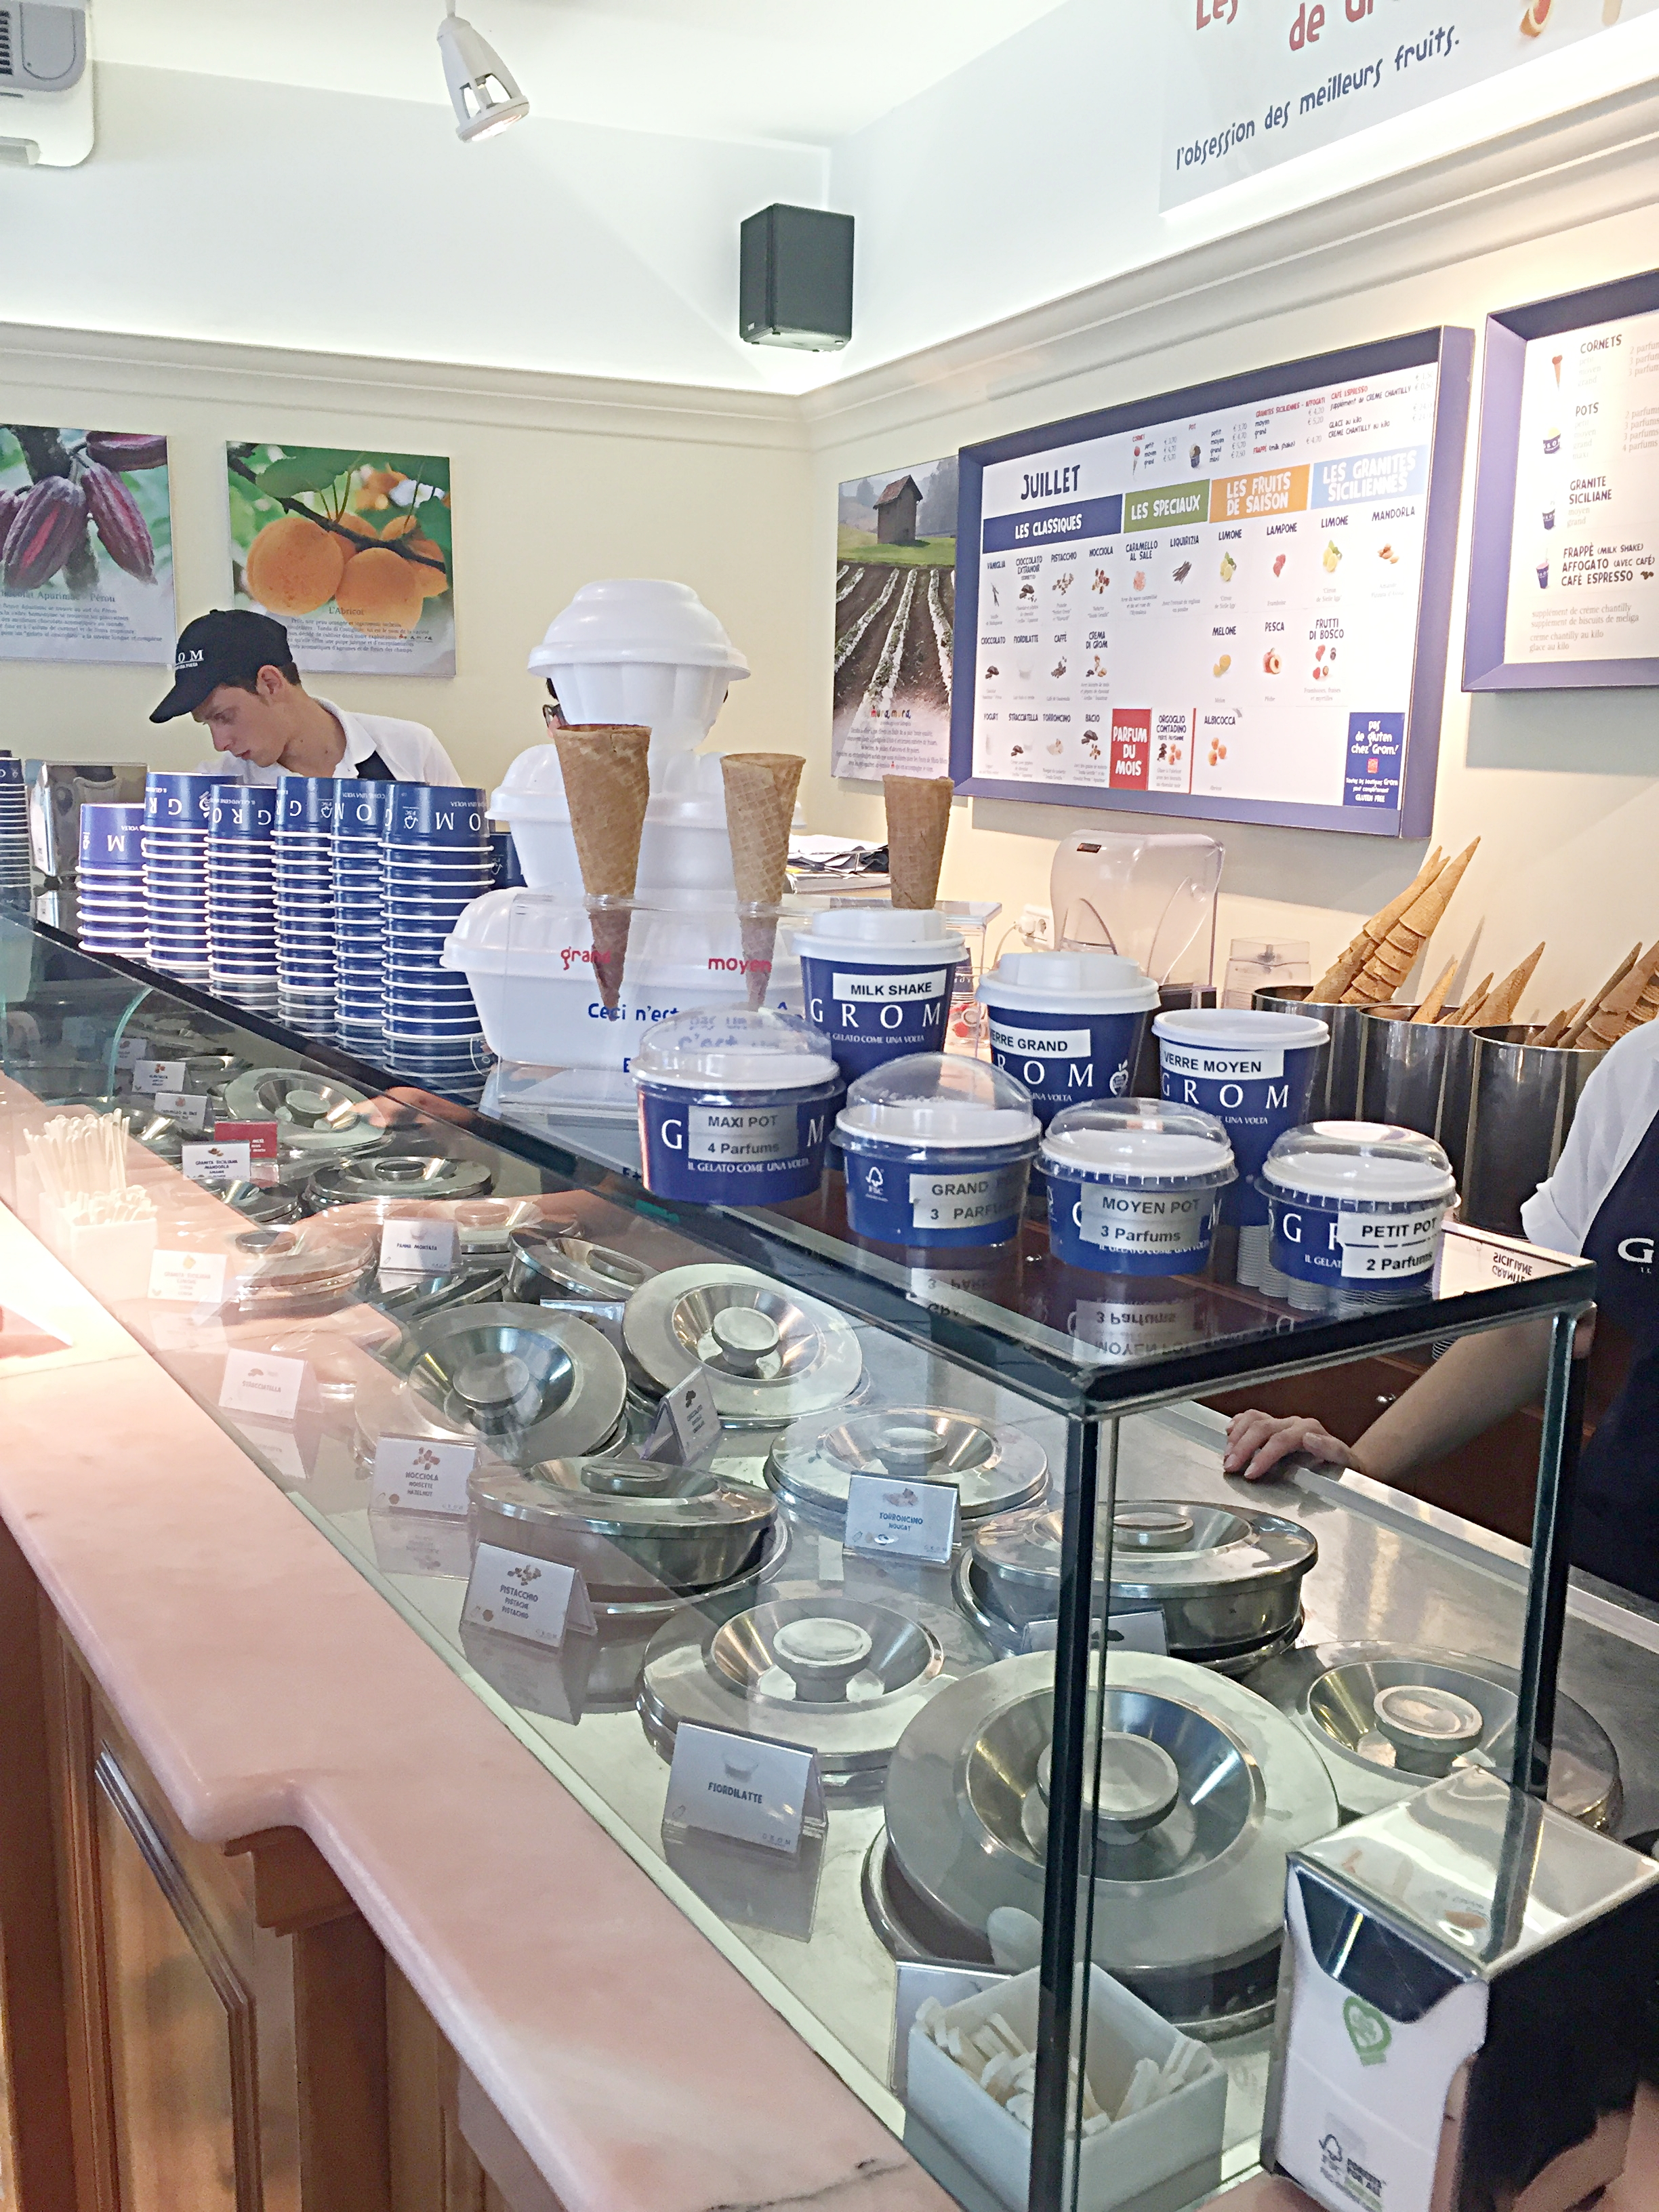 You order first at the counter by picking your size and if you want a cone or a cup. Then you pay and move around to the other side to wait to be called to tell them what you want.